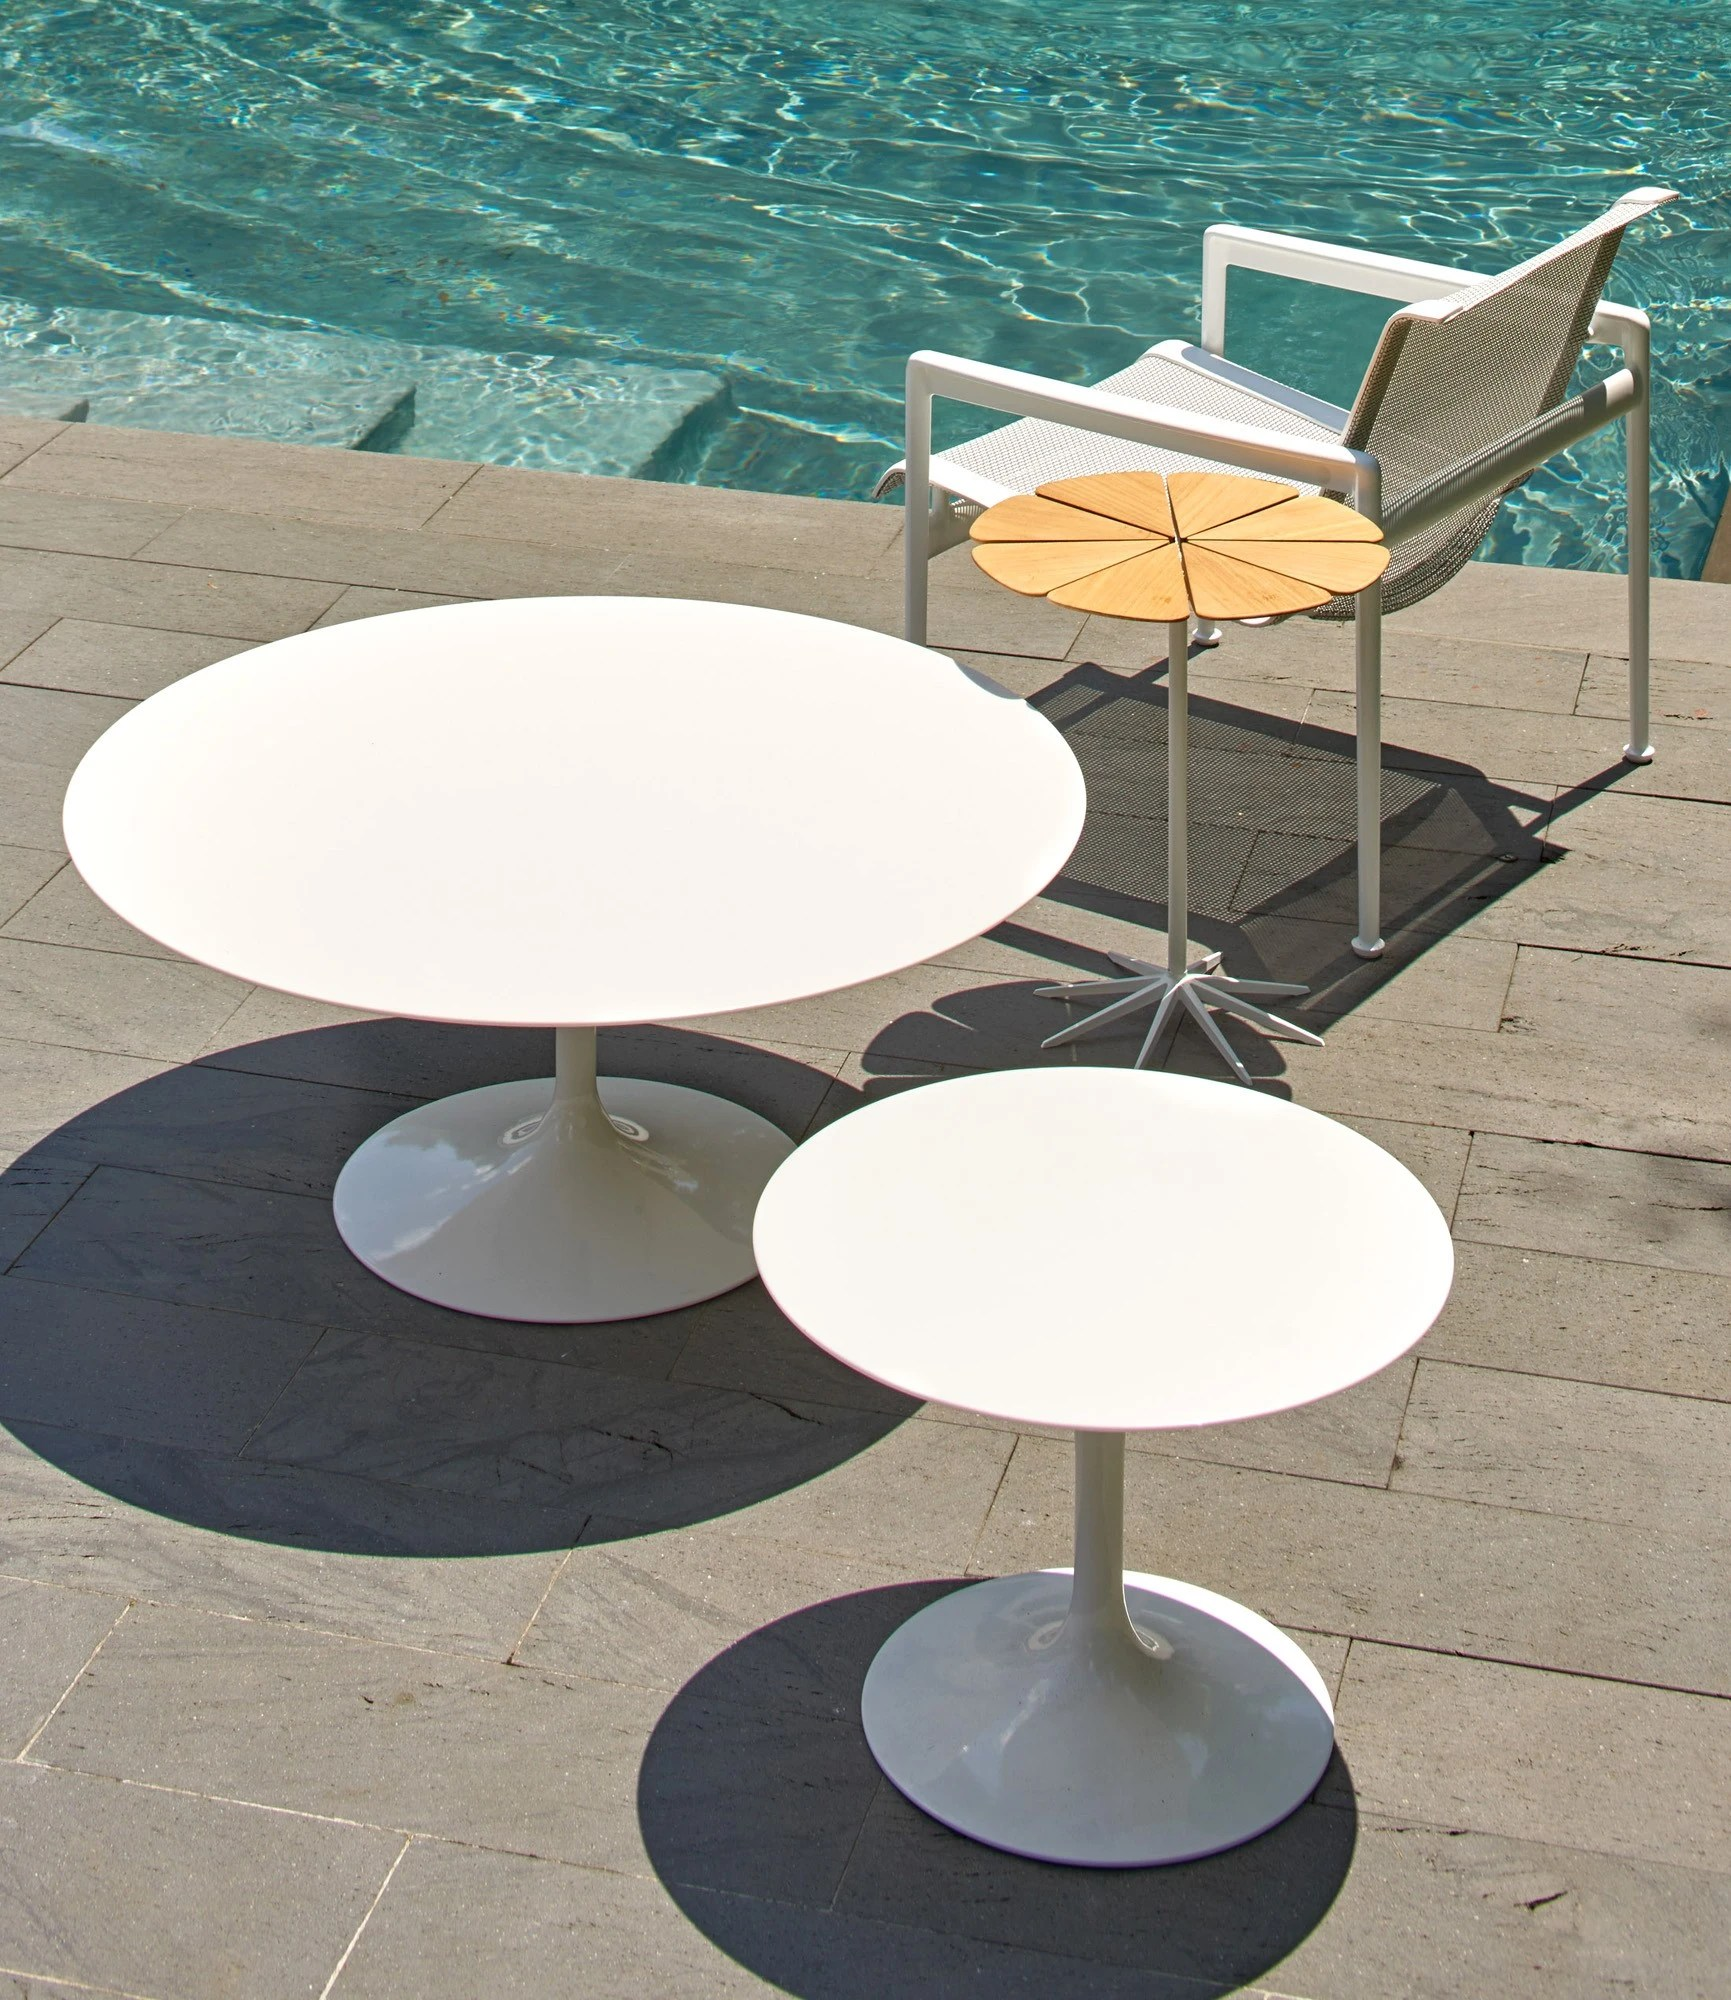 Saarinen Knoll Table Knoll Saarinen Round Coffee Table Outdoor